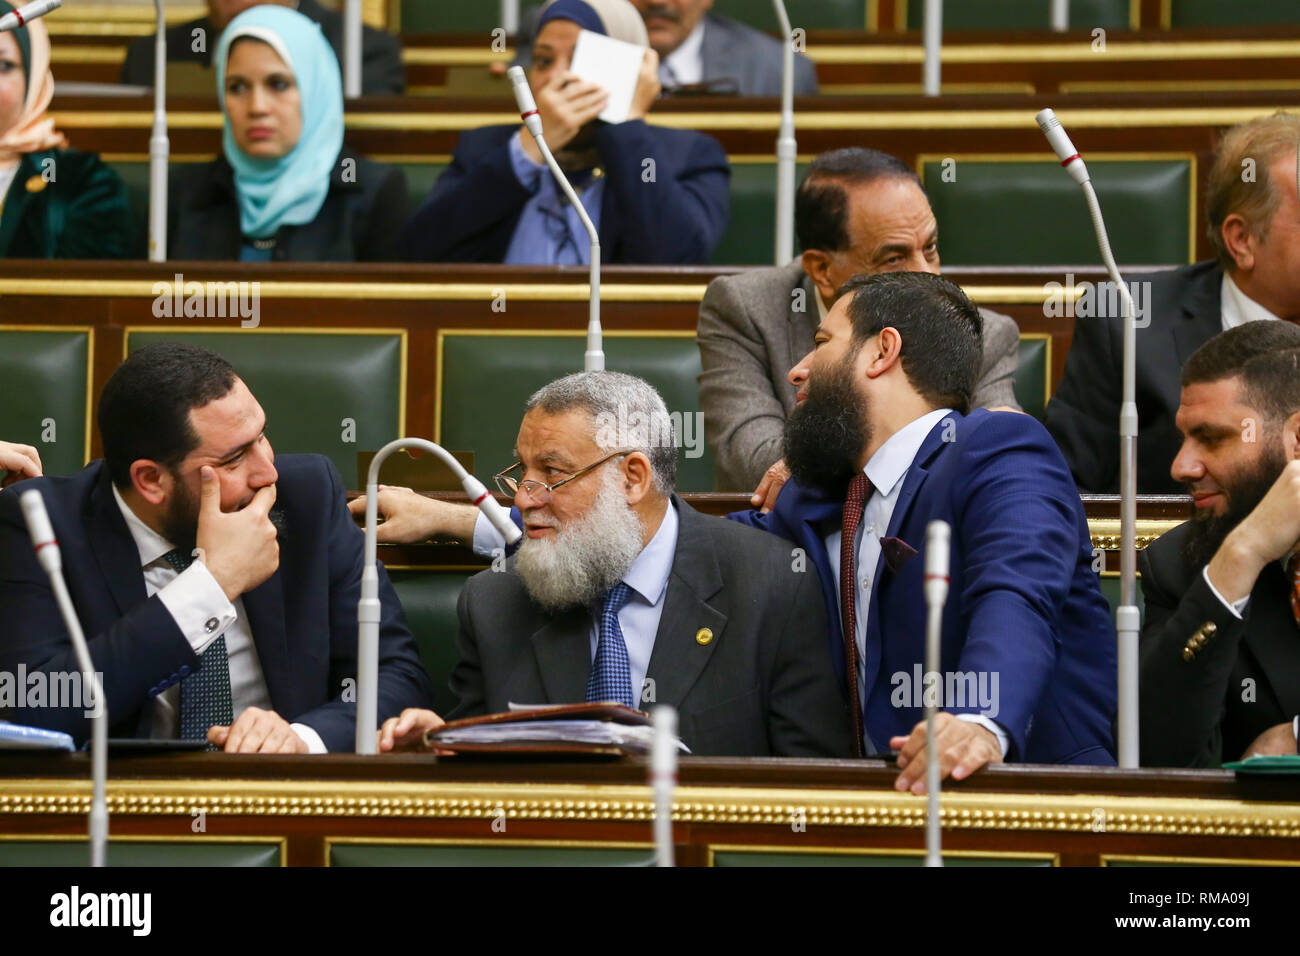 Cairo, Egypt. 14th Feb 2019. MPs of Al-Nour ultra-conservative Islamist party attend a session of the Egyptian Parliament during which Parliament members are voting on the proposed constitutional amendments that will increase the country's President term in office from four to six years after deliberations. If MPs voted in favour, the amendments will be referred to the Legislative and Constitutional Affairs Committee to be discussed in detail and finalized before being referred to the President to be put up for a public vote in a national referendum.Credit: dpa picture alliance/Alamy Live News - Stock Image